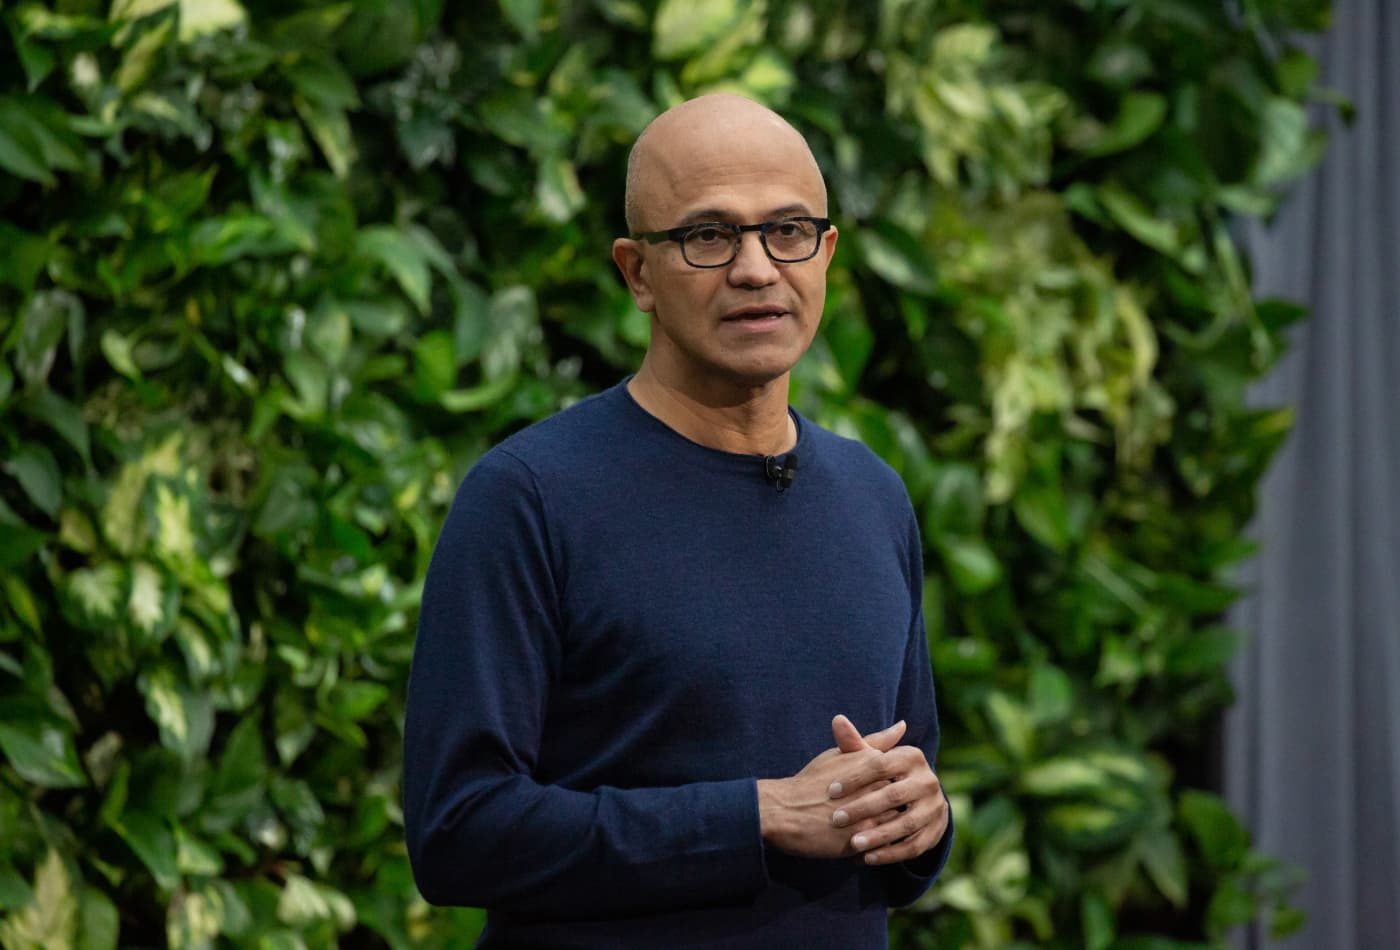 Capitalism 'will fundamentally be in jeopardy' if business does not act on climate change, Microsoft CEO Satya Nadella says